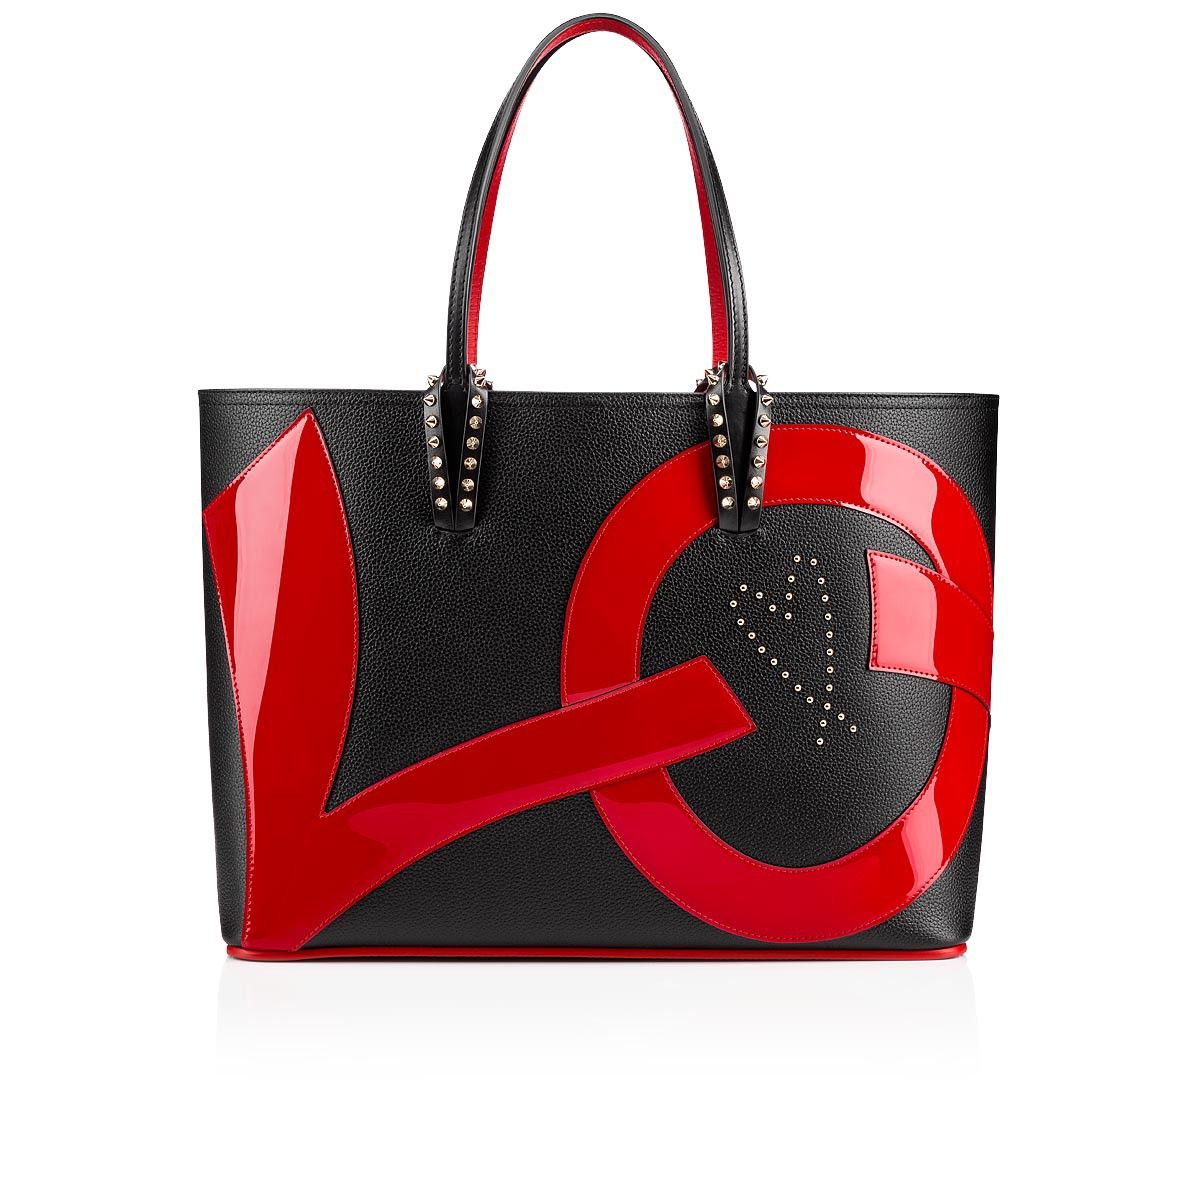 Christian Louboutin United States Official Online Boutique - Cabata Tote Bag  Black and Red Calfskin available online. Discover more Handbags by Christian  ... 0e3b95a8d87d1